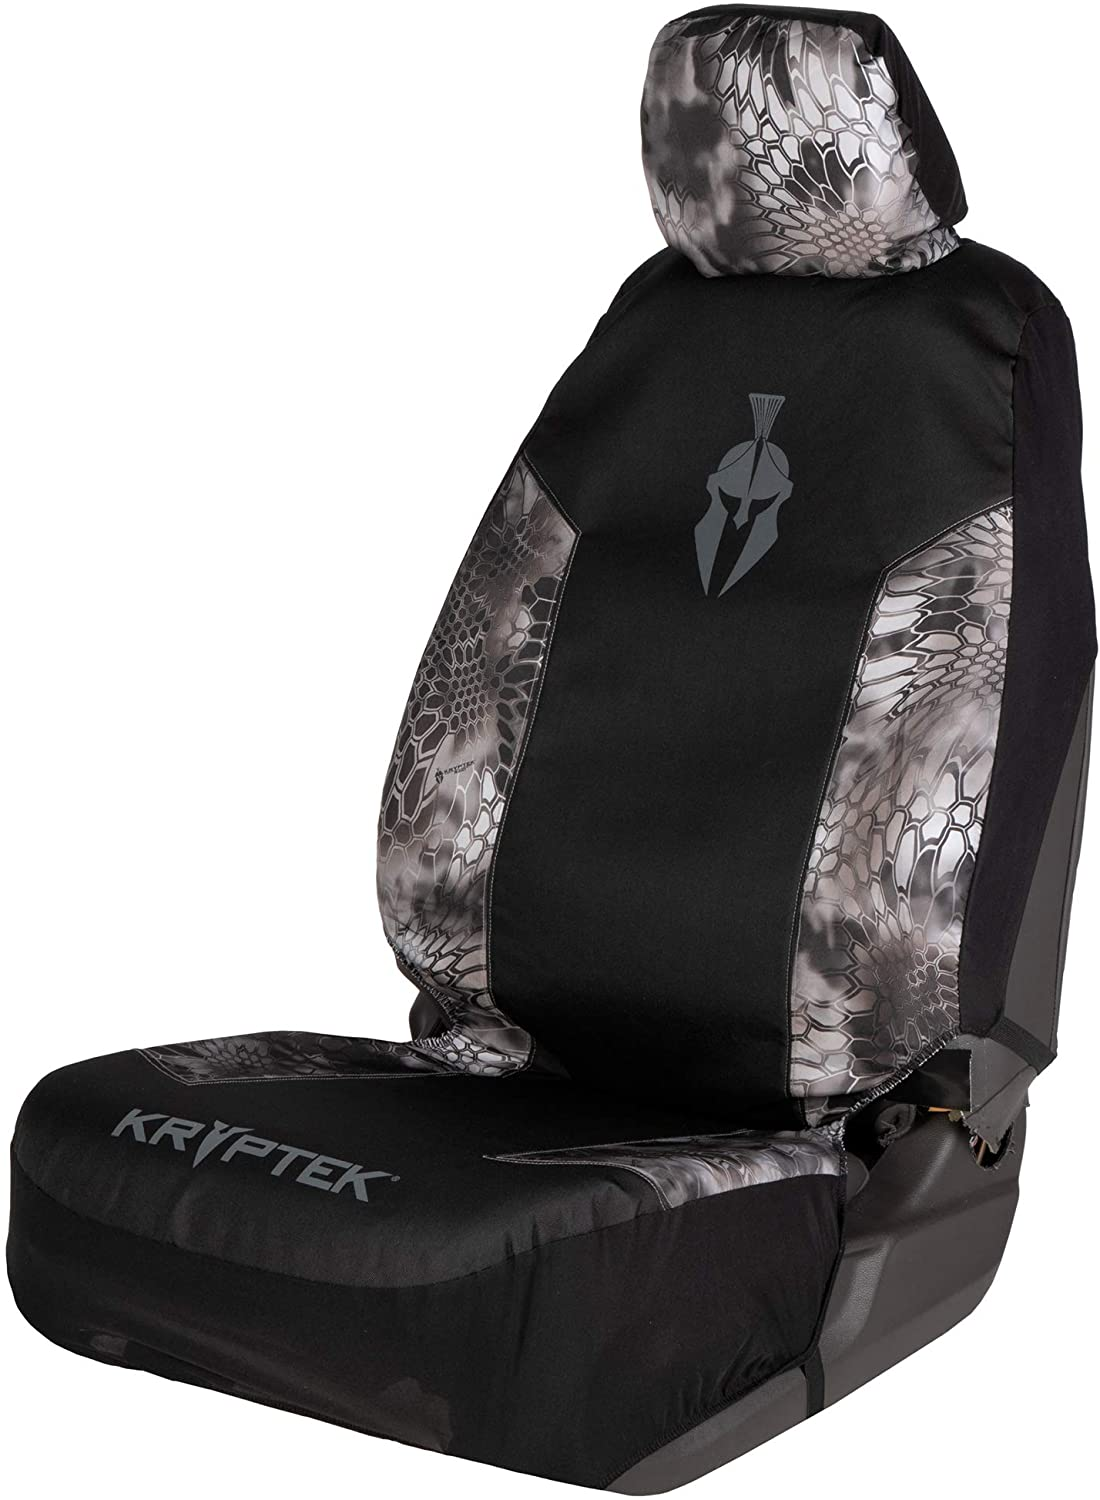 Kryptek Spartan Auto Seat Cover for Car, Truck, and SUV